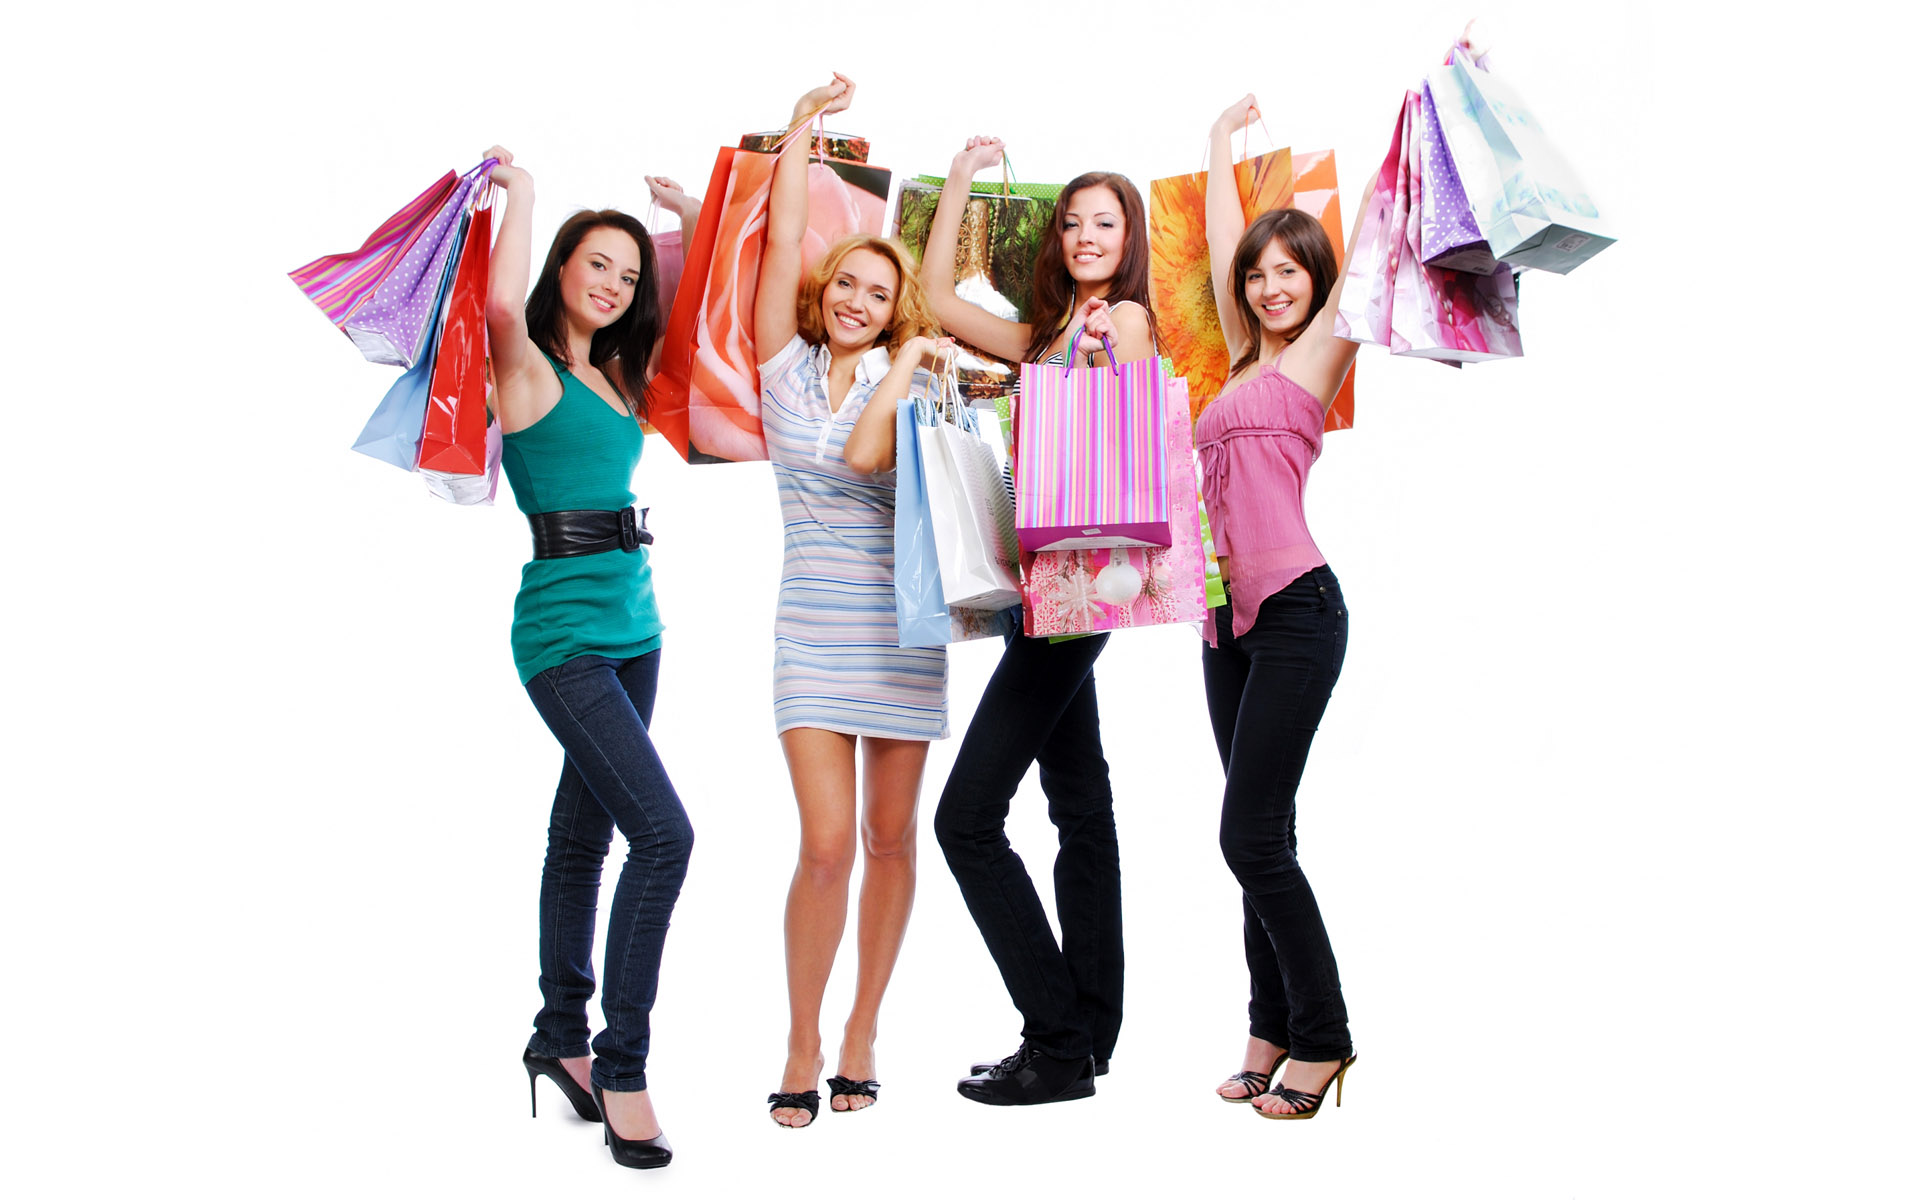 24192-hd-women-shopping - Women Shopping PNG HD